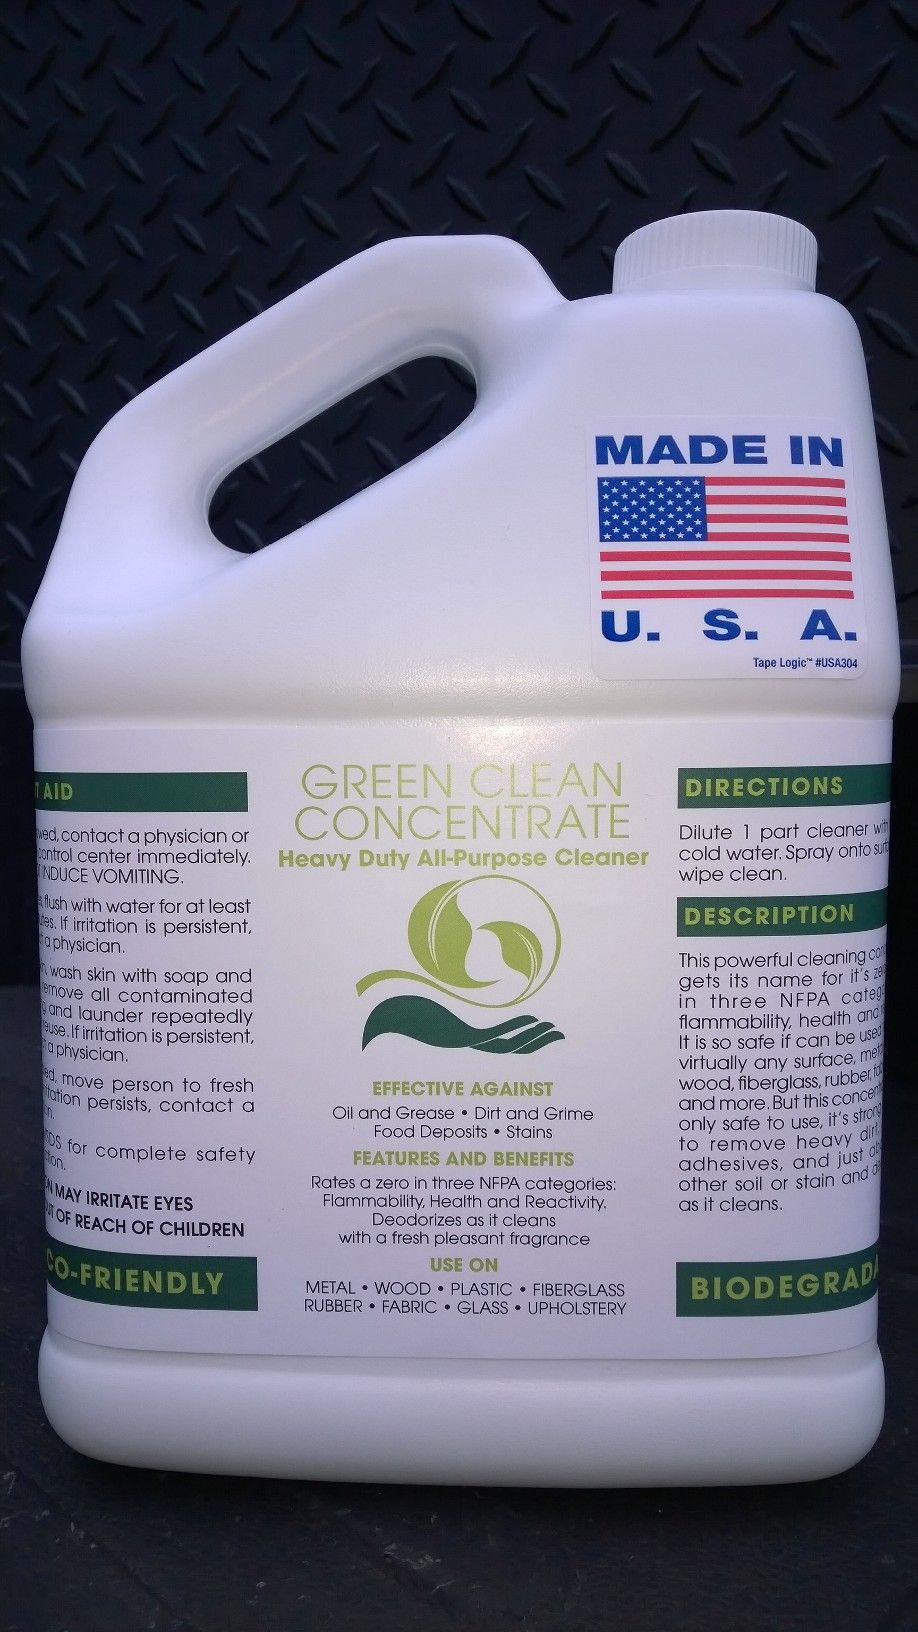 GREEN CLEAN CONCENTRATE HEAVY DUTY ALL-PURPOSE CLEANER ~ 1 Gal ~ Eco-Friendly ~ Biodegradable ~ Highly Powerful ~ Deodorizes ~ Pleasant Scent ~ Removes Oil, Grease, Dirt, Grime, Food Deposits, Stains, Adhesives, etc. For Use On: Metal, Wood, Plastic, Fiberglass, Rubber, Fabric, Glass, Upholstery, etc. Rates a 0 in NFPA Flammability Category. Call 888-896-4827. Visit patriotchemicalcompany.com.